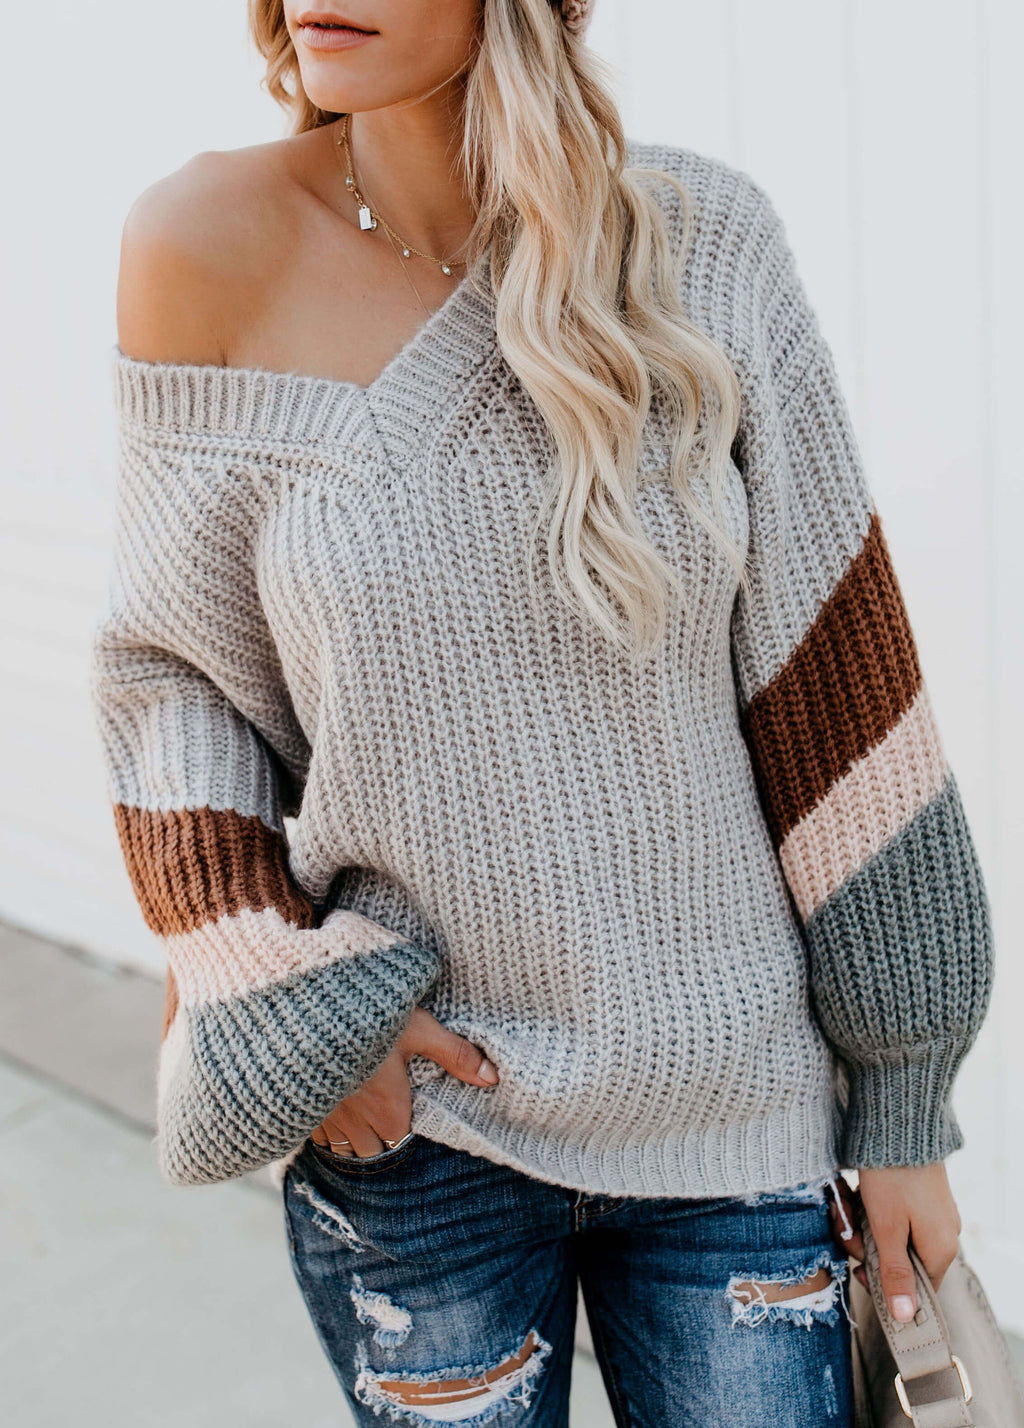 Geometric V Neck Knitted Sweater - fashionyanclothes